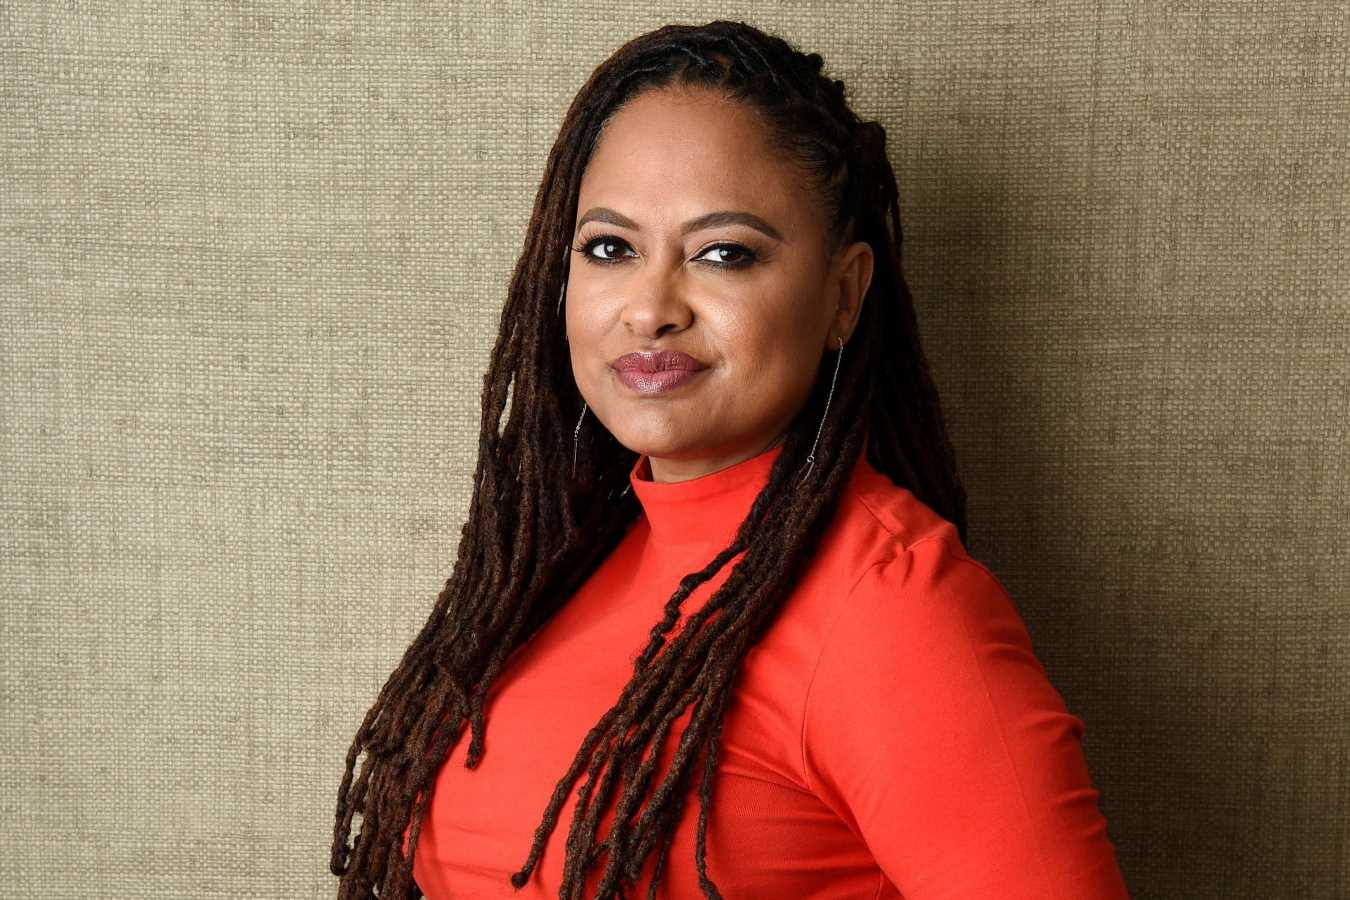 Ava DuVernay goes deep on Central Park Five Netflix series When They See Us